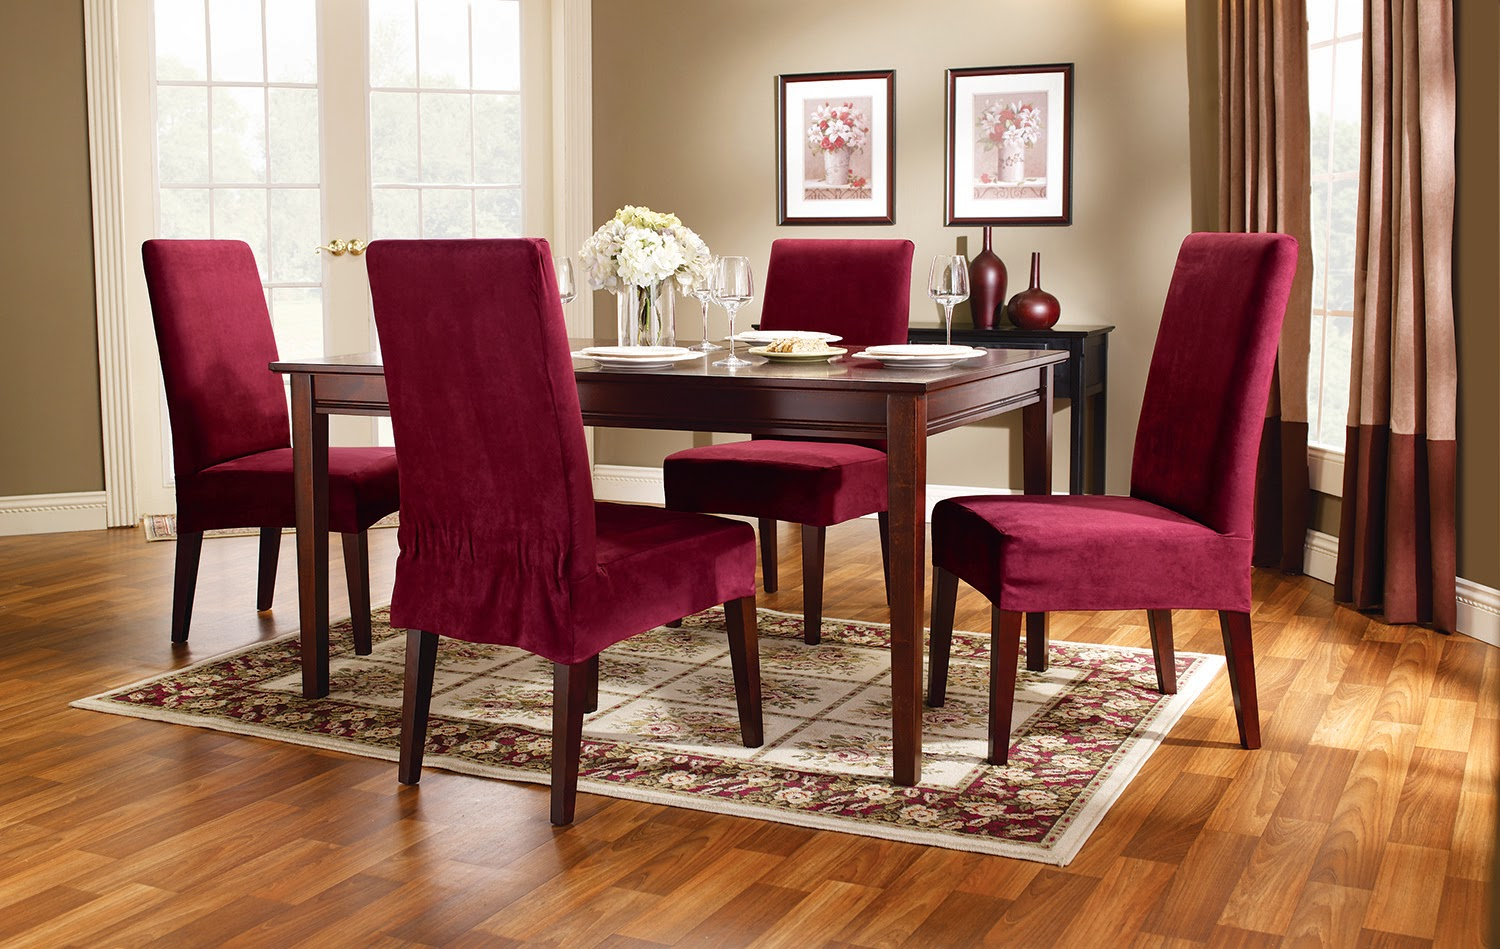 Dining Chair Covers Velvet Back Sure Fit Slipcovers Super Easy Way To Pretty Up Those